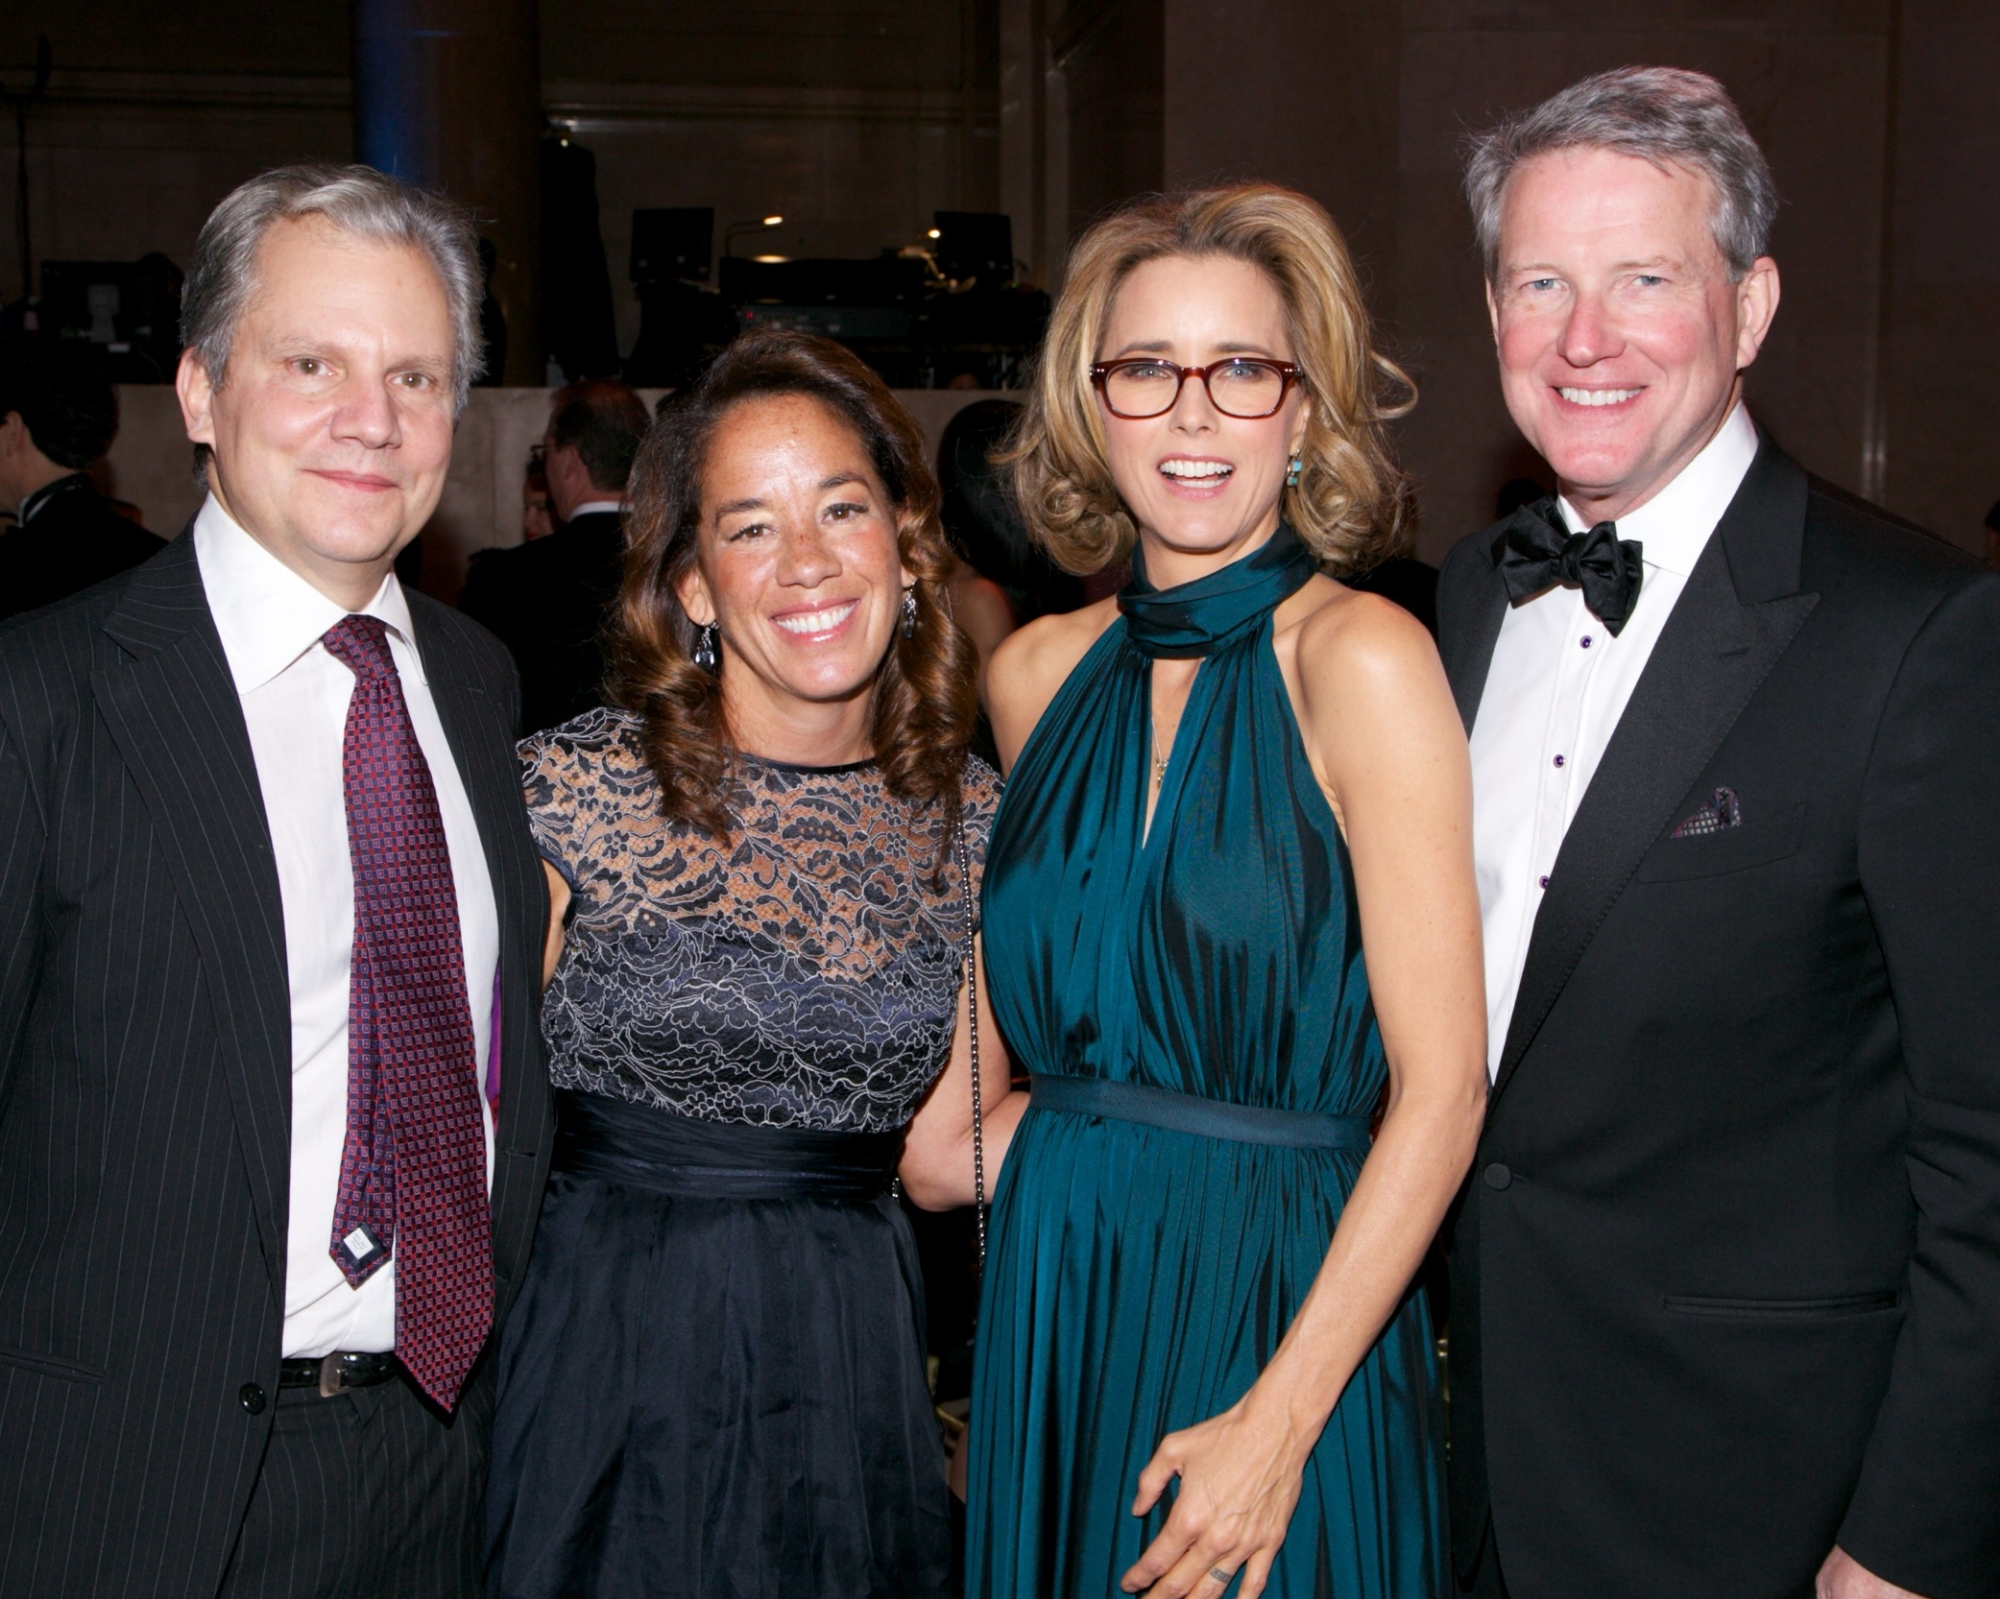 Arthur and Gabrielle Sulzberger, Tea Leoni and Guest ©2014 Julie Skarratt Photography, Inc./U.S. Fund for UNICEF